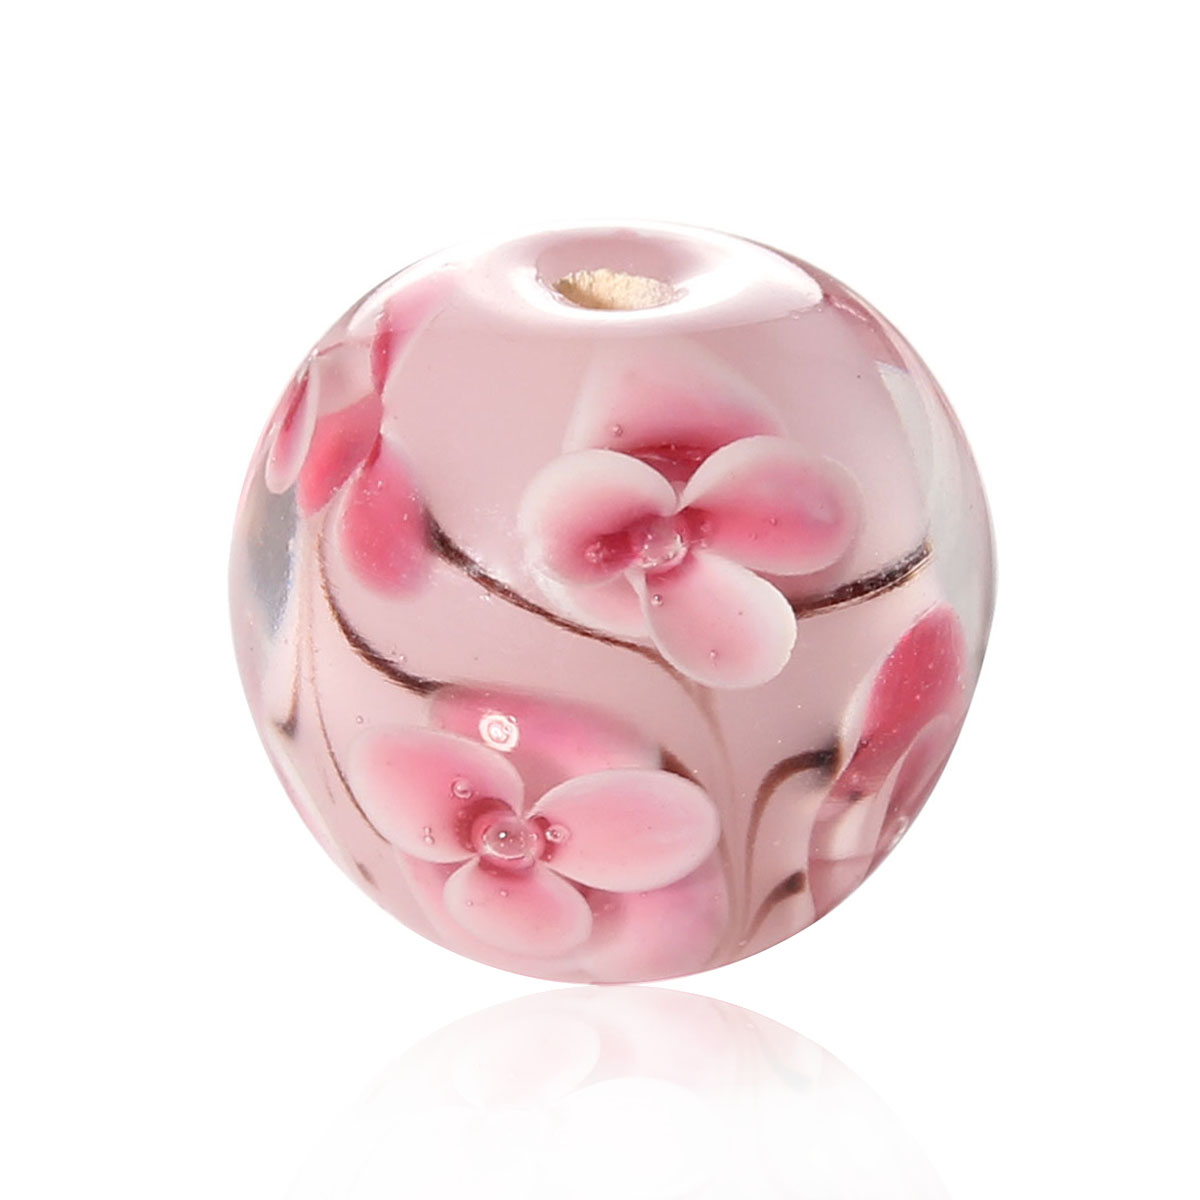 Handmadelampwork Glass Beads Round Pink Flower Transparent About 16mm Diahole Approx 23mm 27mm1 Piece In Garment Beads From Home Garden On